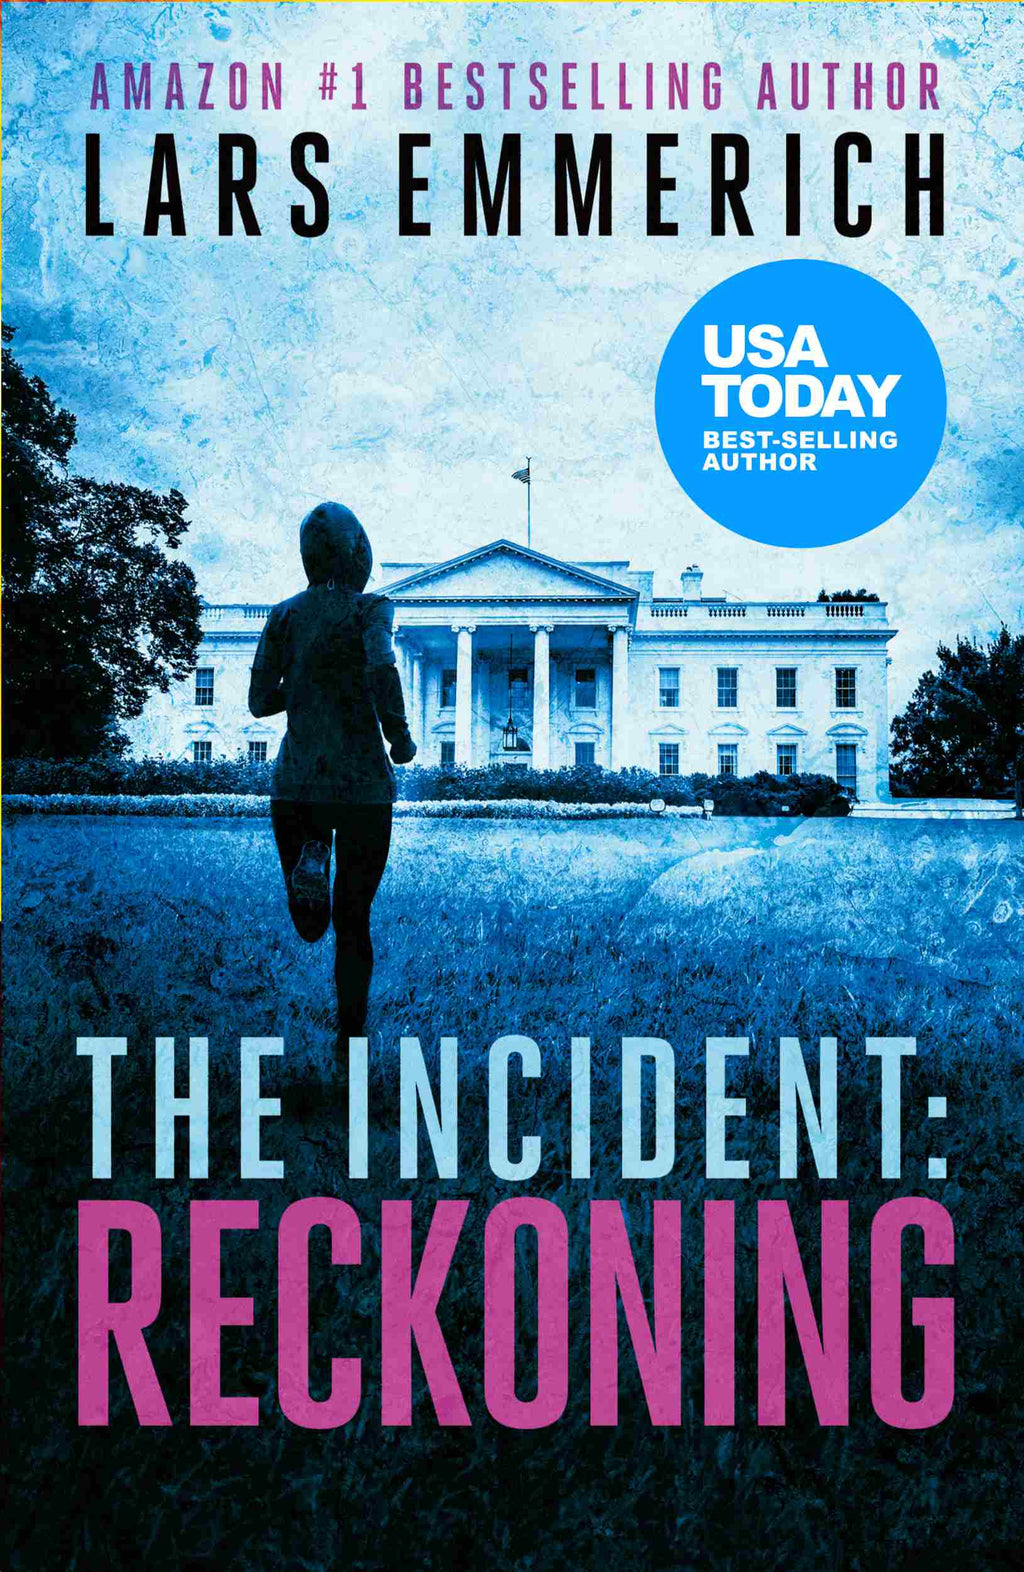 The Incident: Reckoning (Paperback)